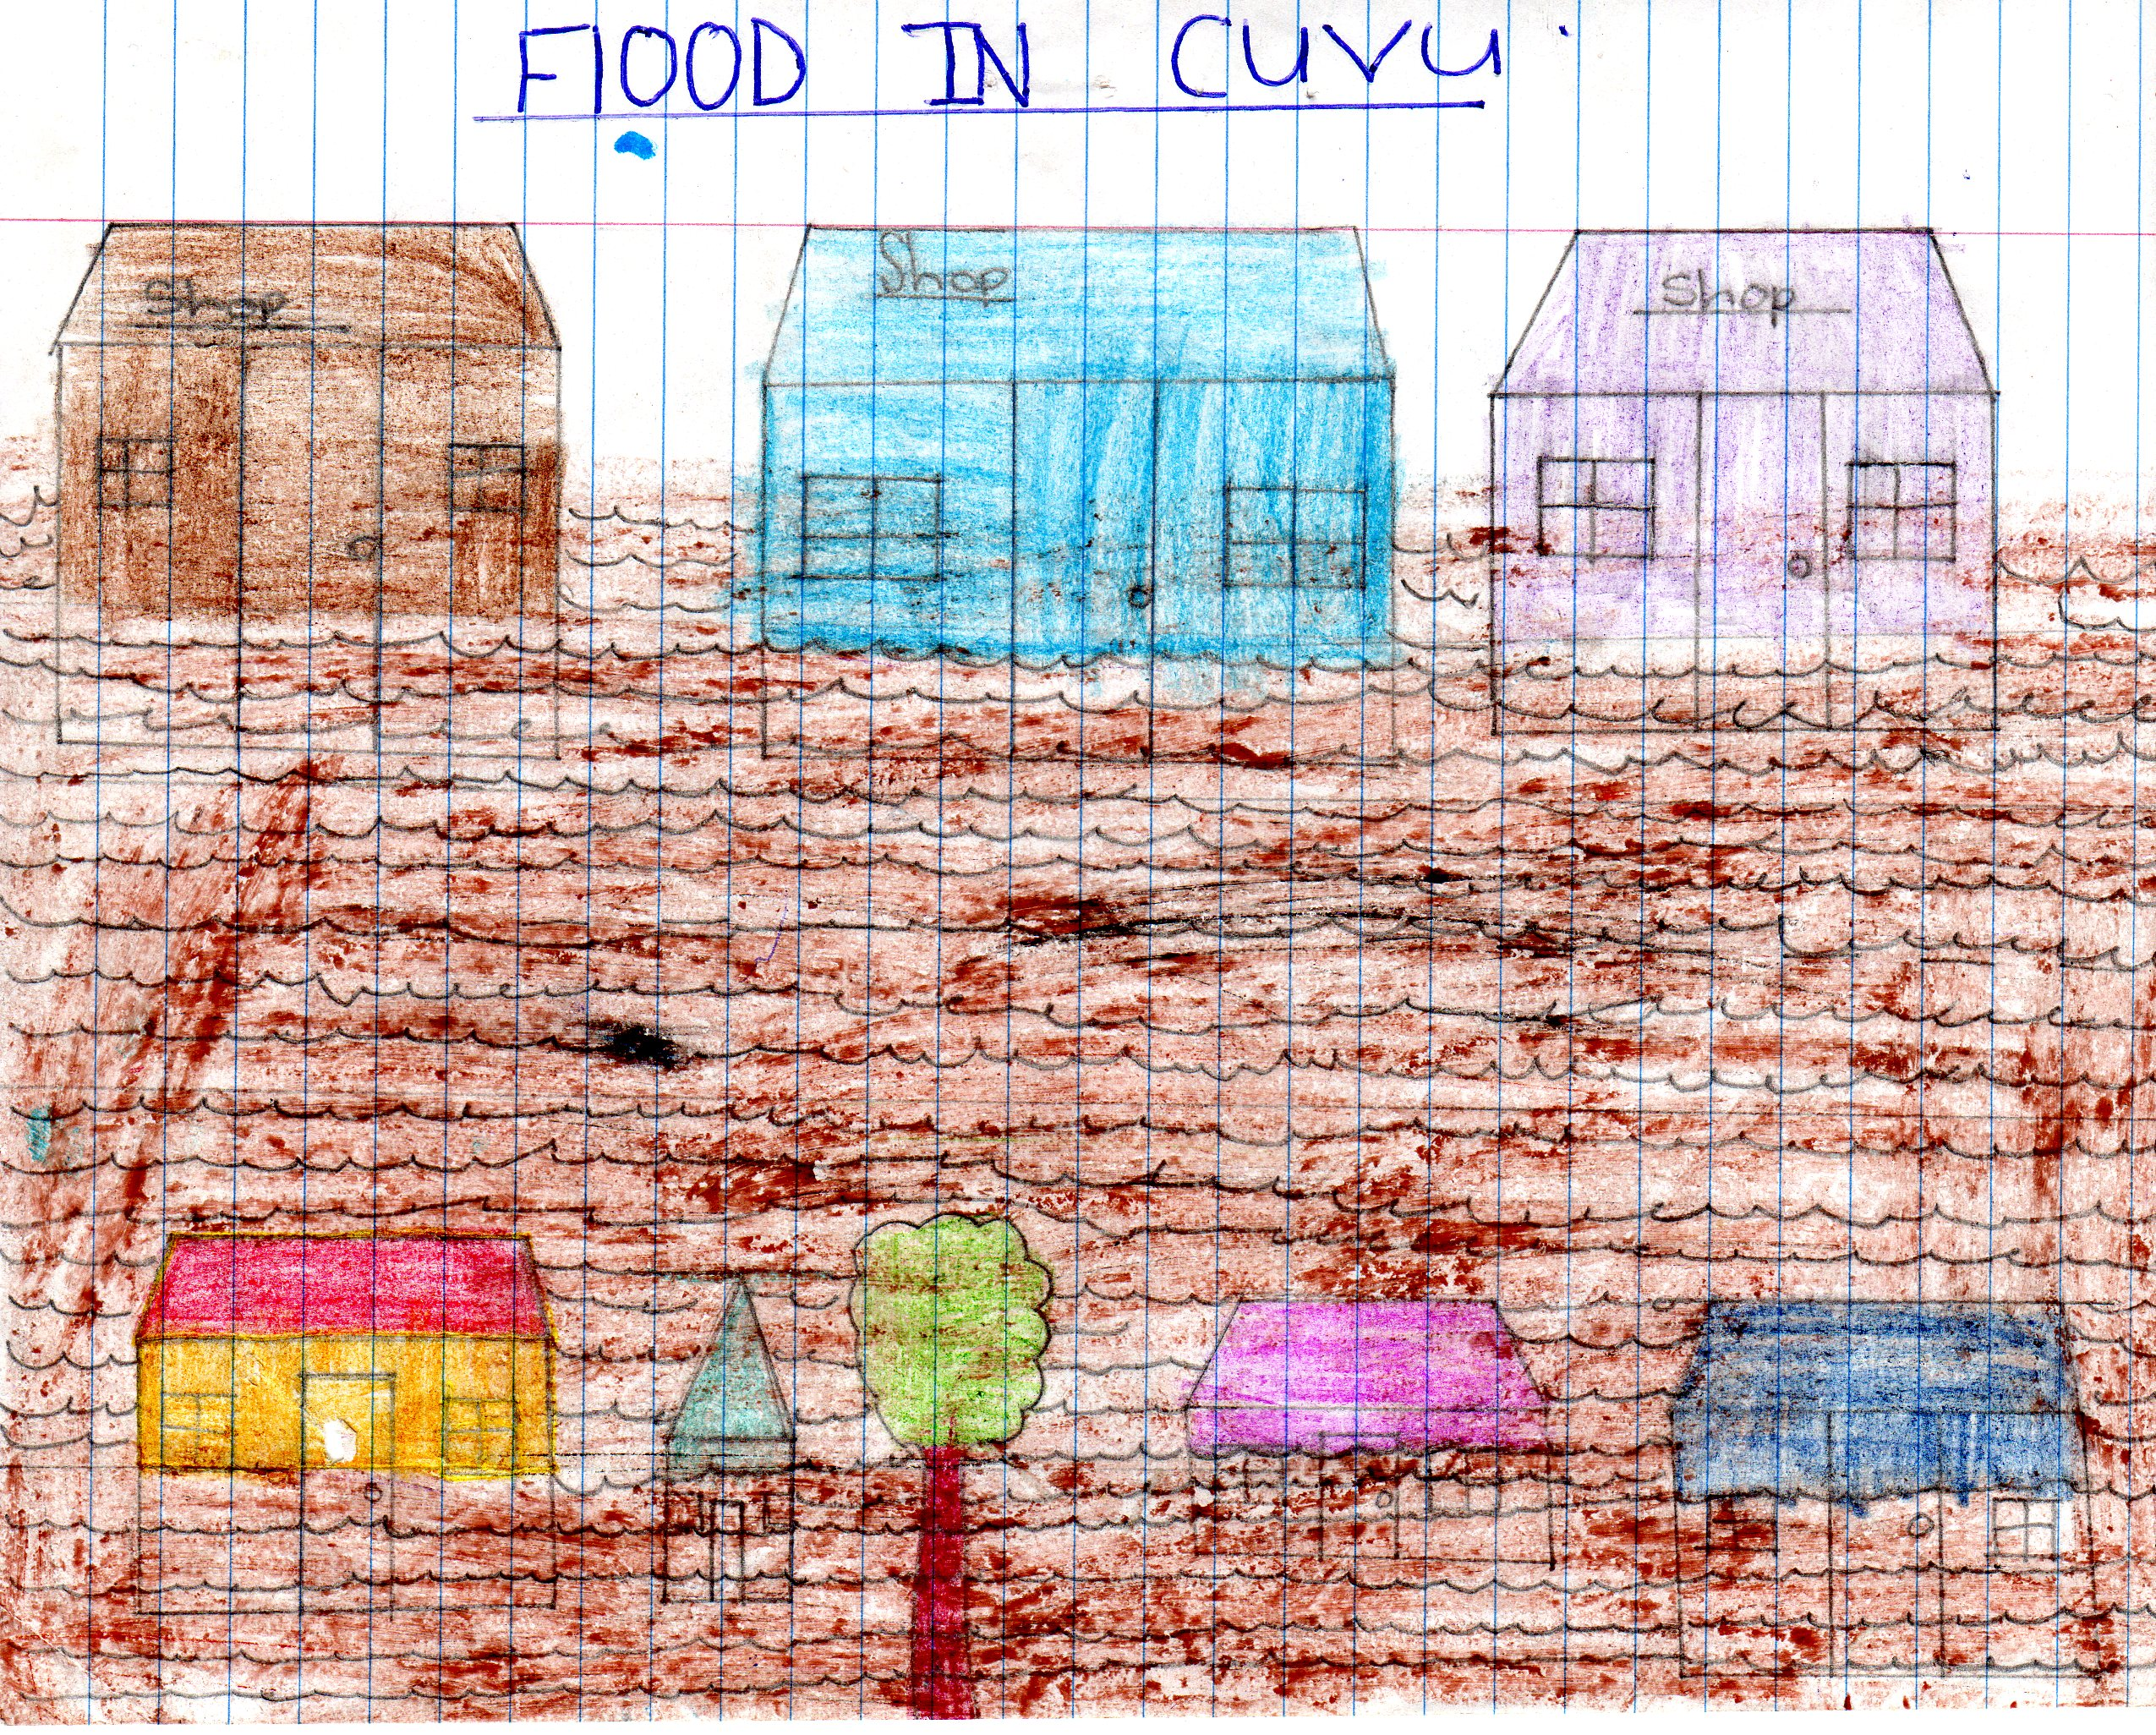 The flood - through the eyes of a child